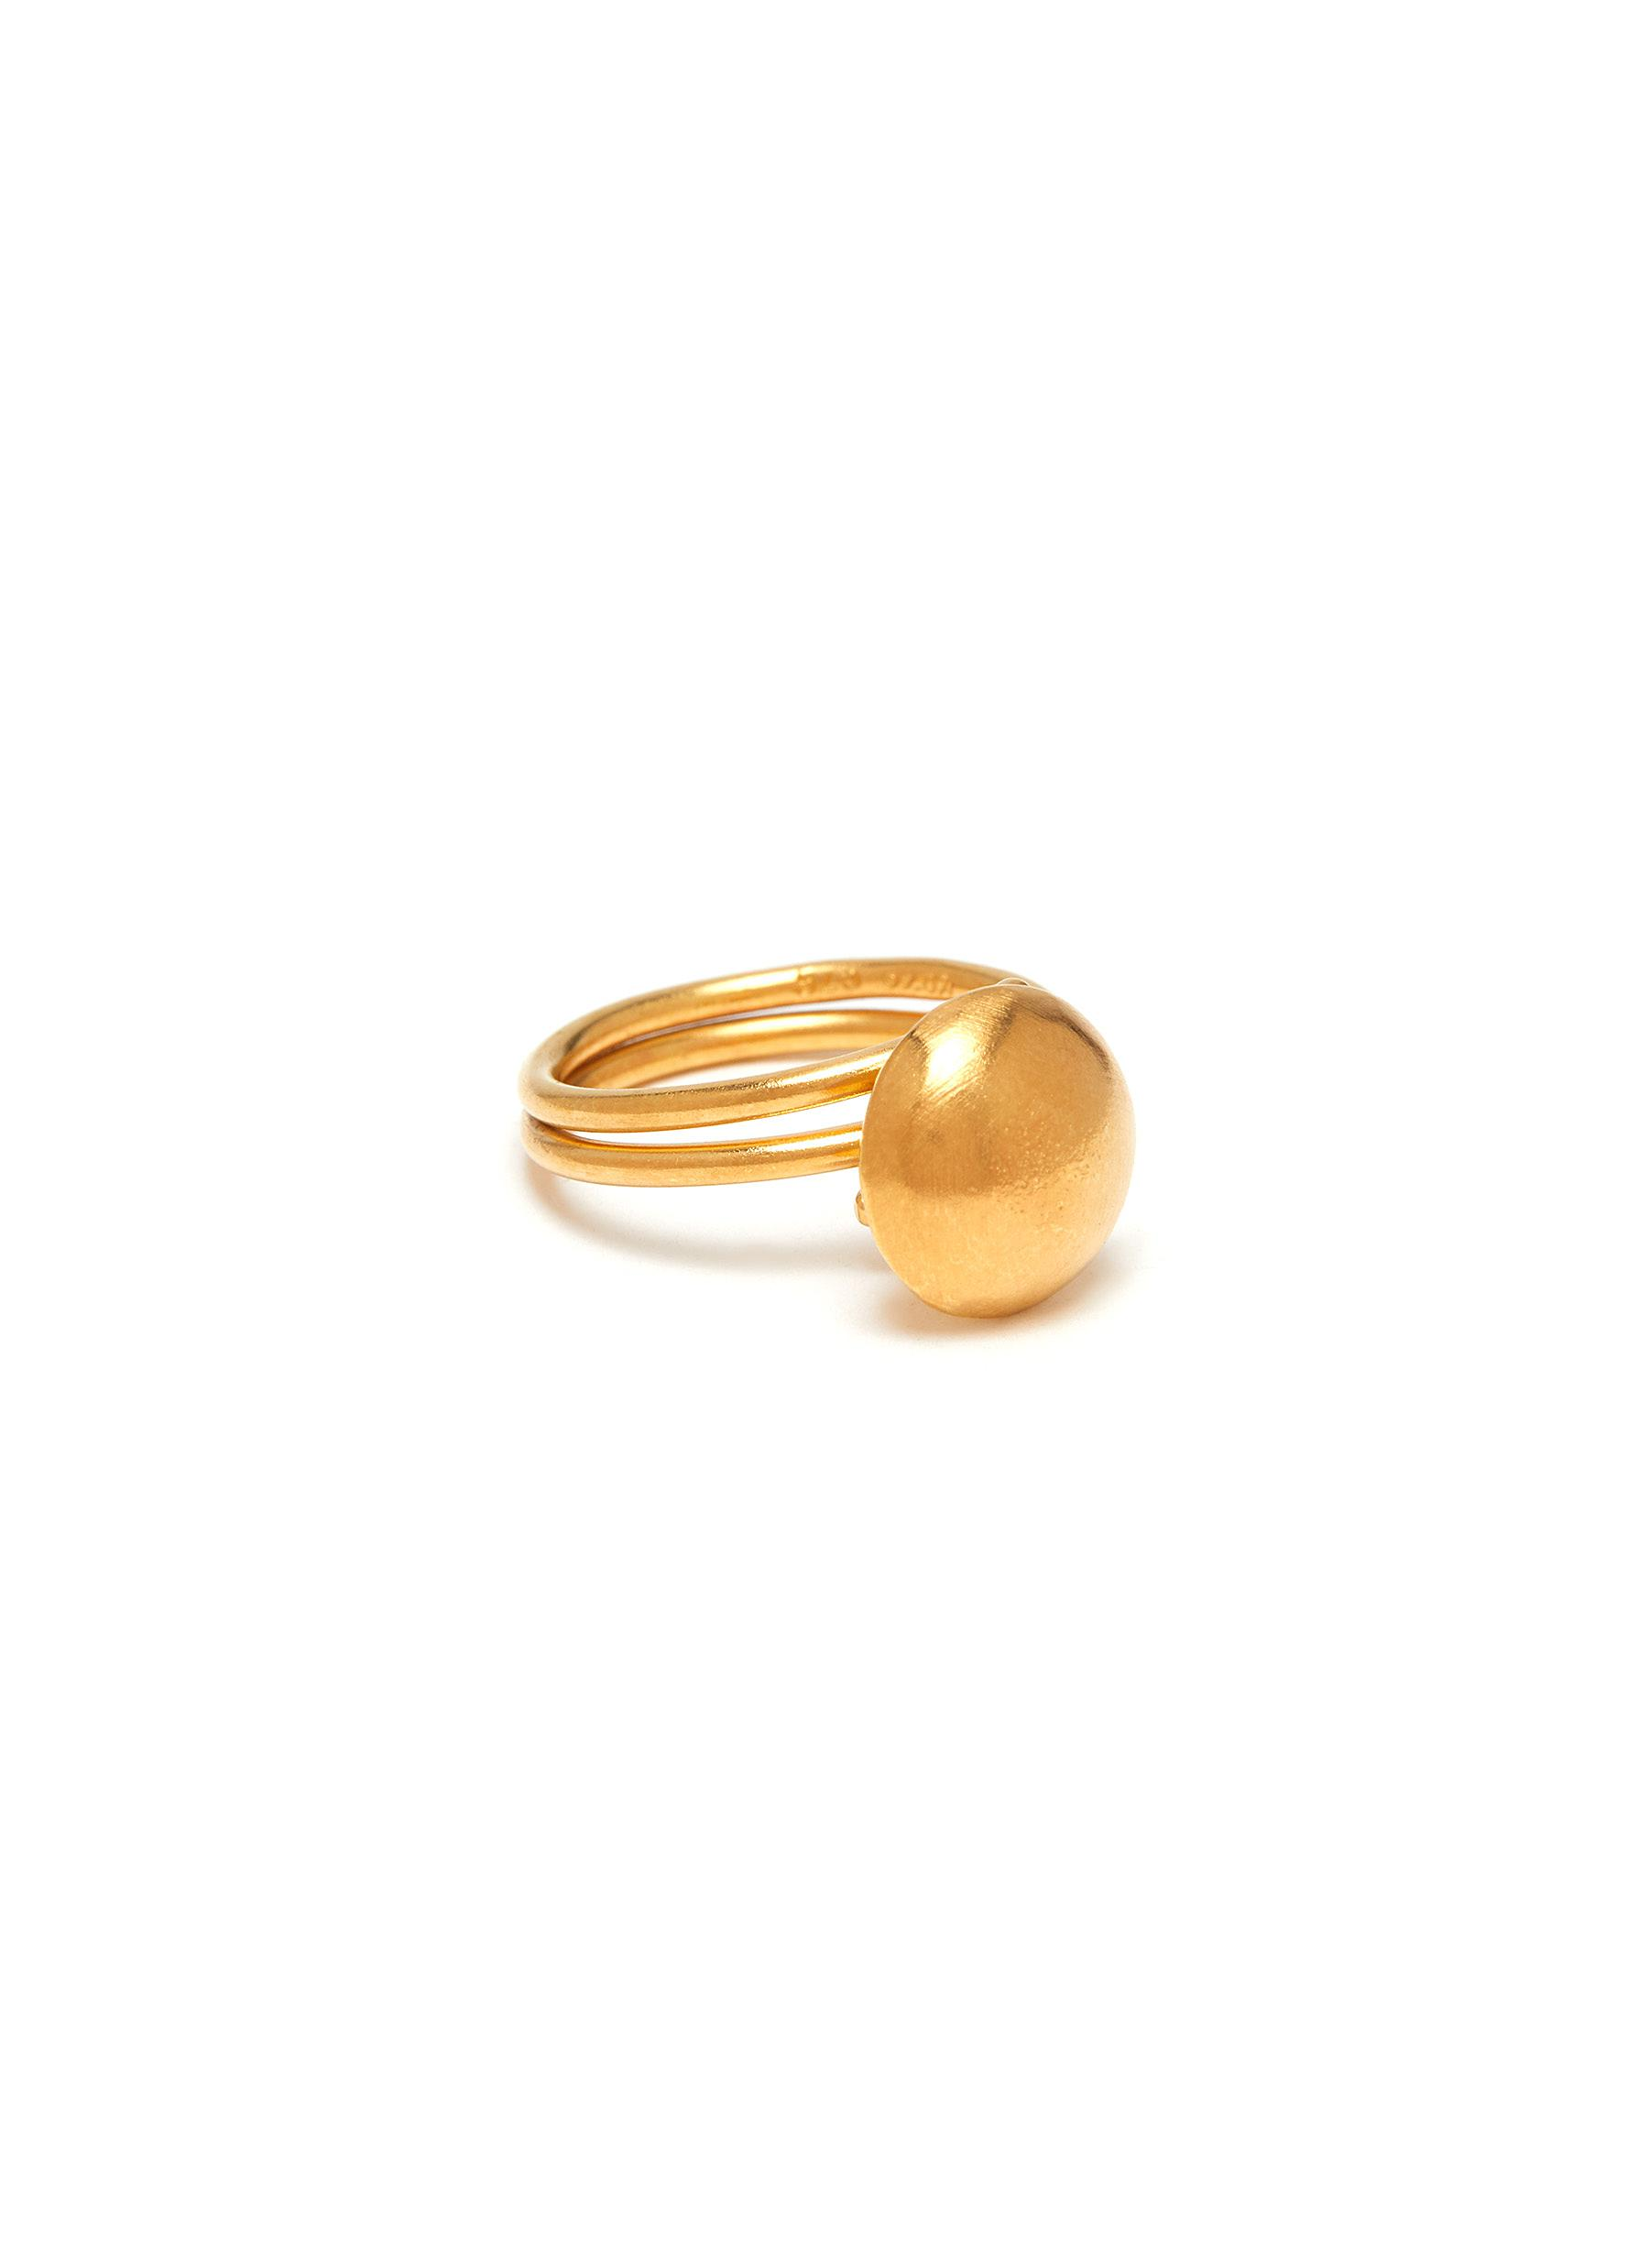 'Small Moon' 24k gold plated silver vermeil ring